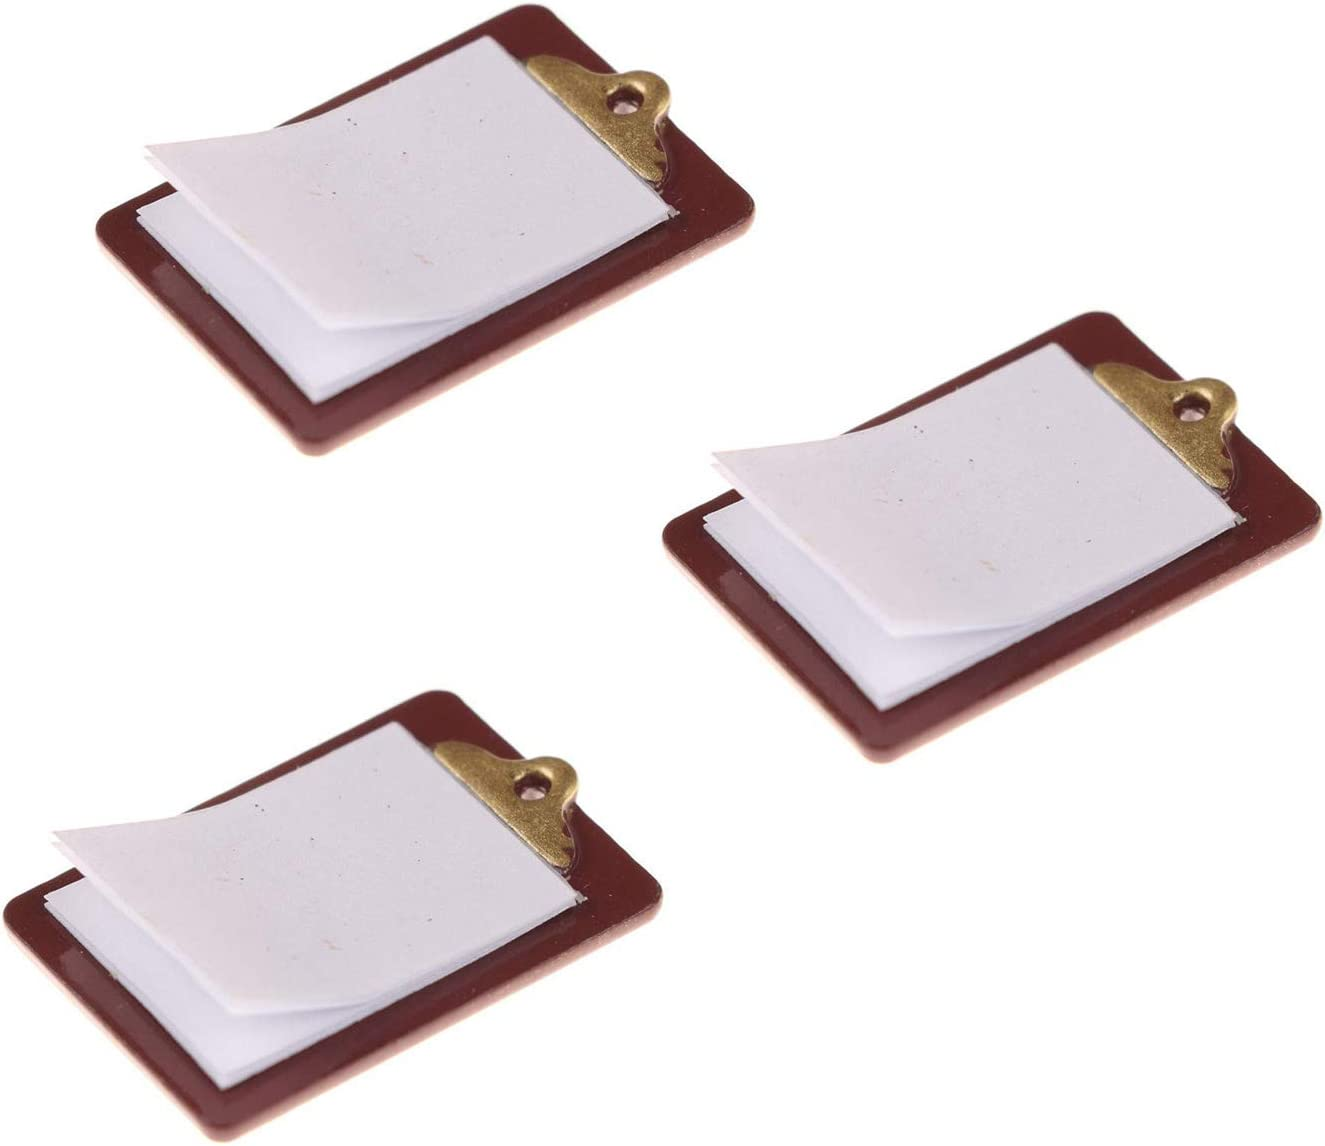 3 Pieces 18x21mm Mini Lovely Paper Clipboard Mini Clipboard Kids Dollhouse Toy House Miniature Accessories Dark Brown